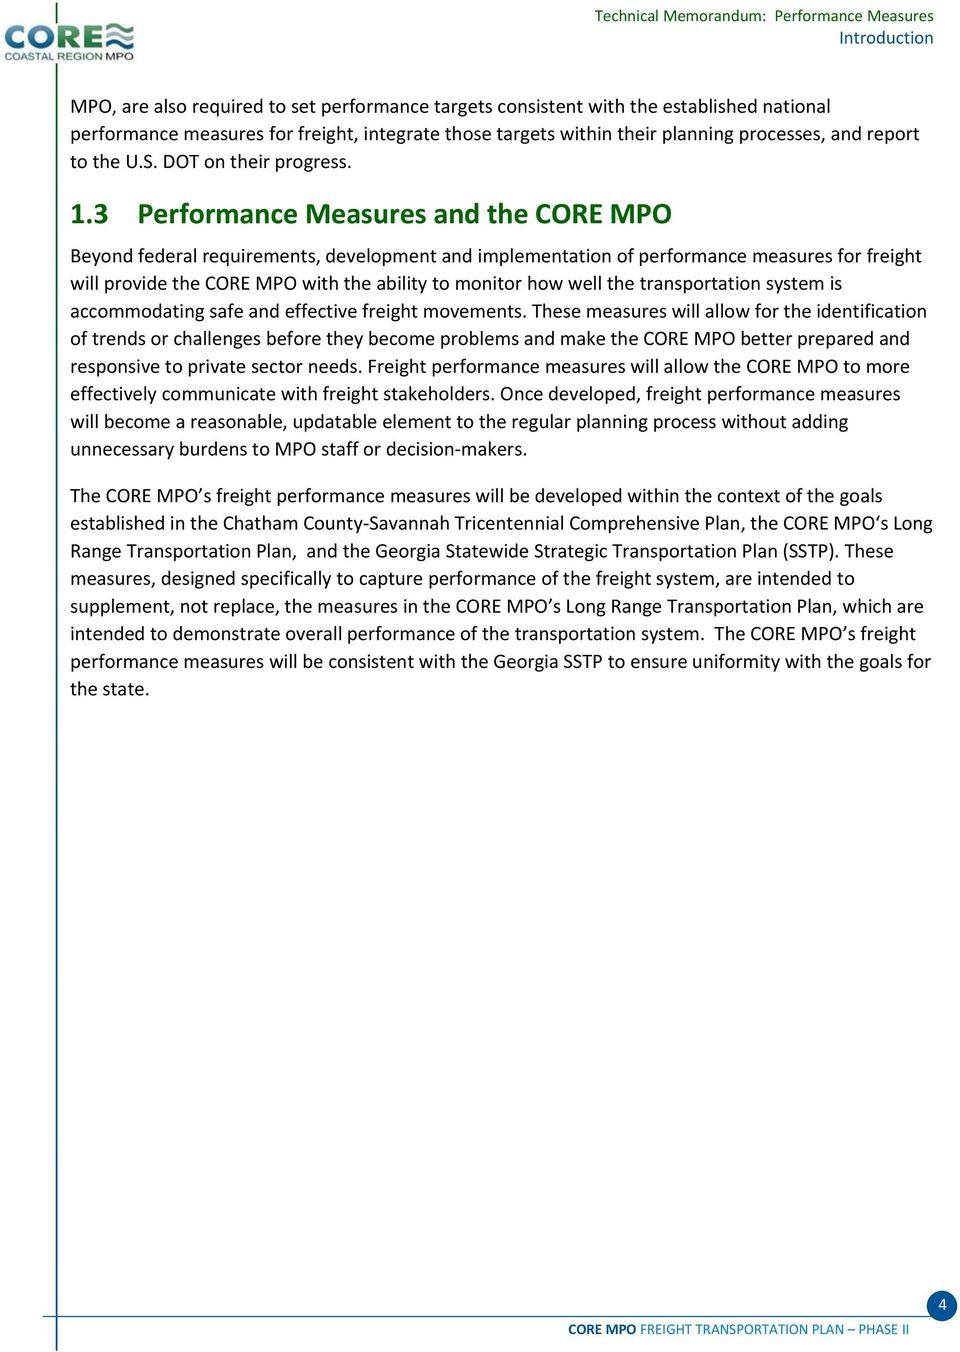 3 Performance Measures and the CORE MPO Beyond federal requirements, development and implementation of performance measures for freight will provide the CORE MPO with the ability to monitor how well